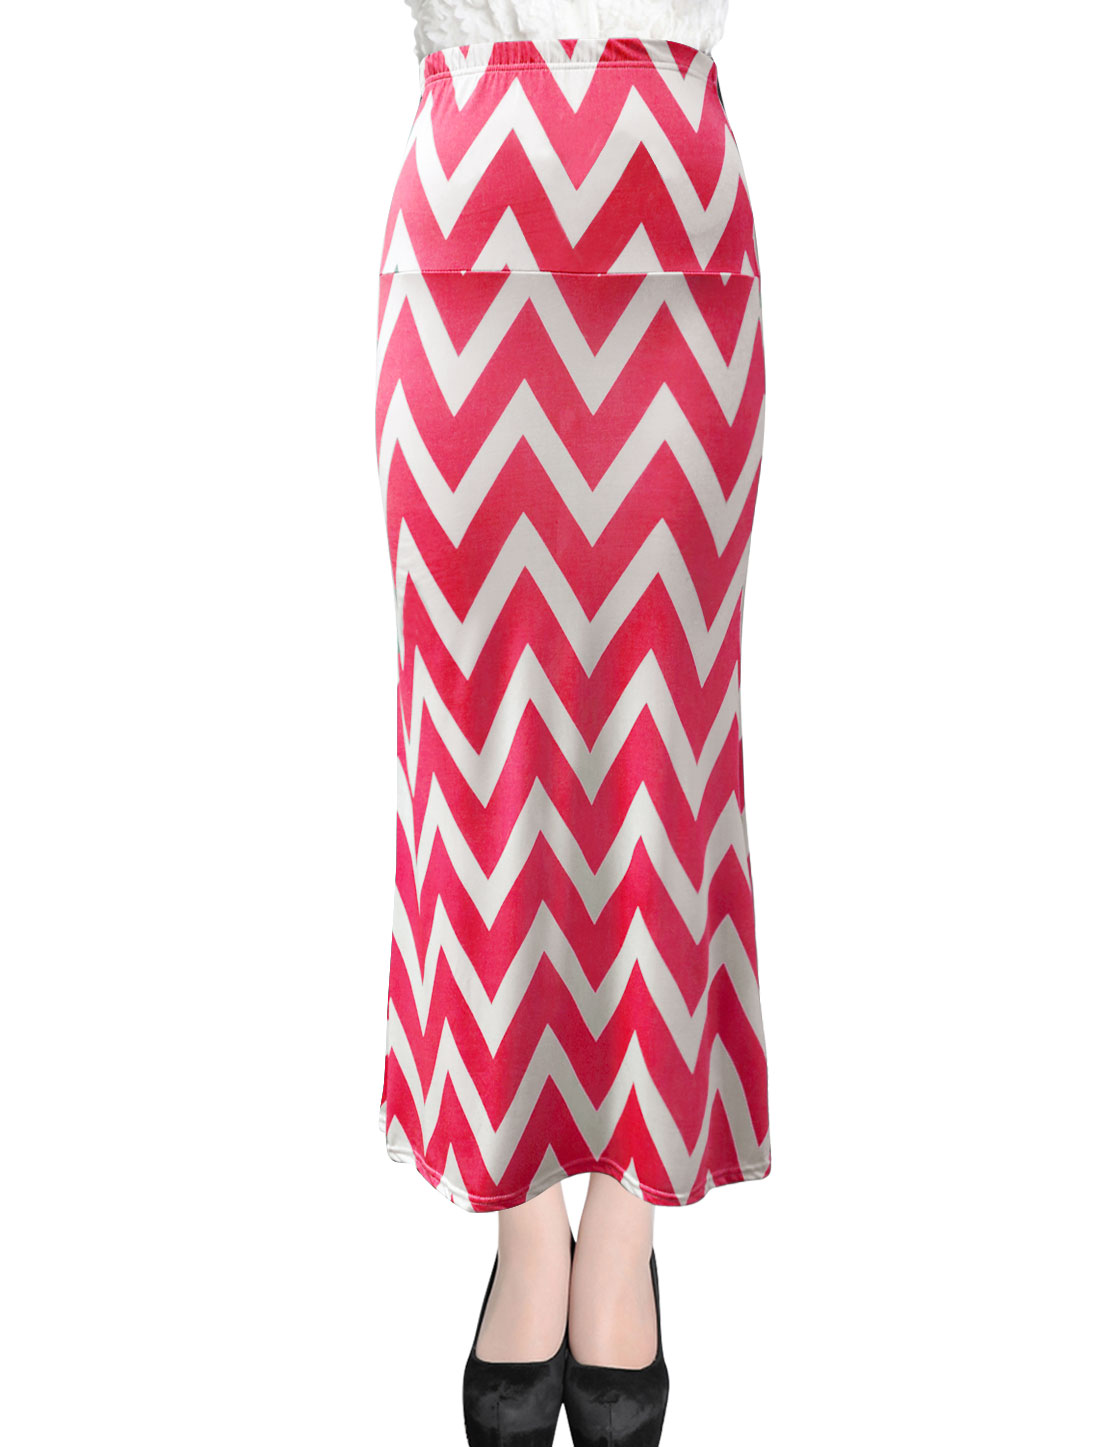 Lady Stretchy Waist Casual Maxi Straight Skirt Dark Pink White XL